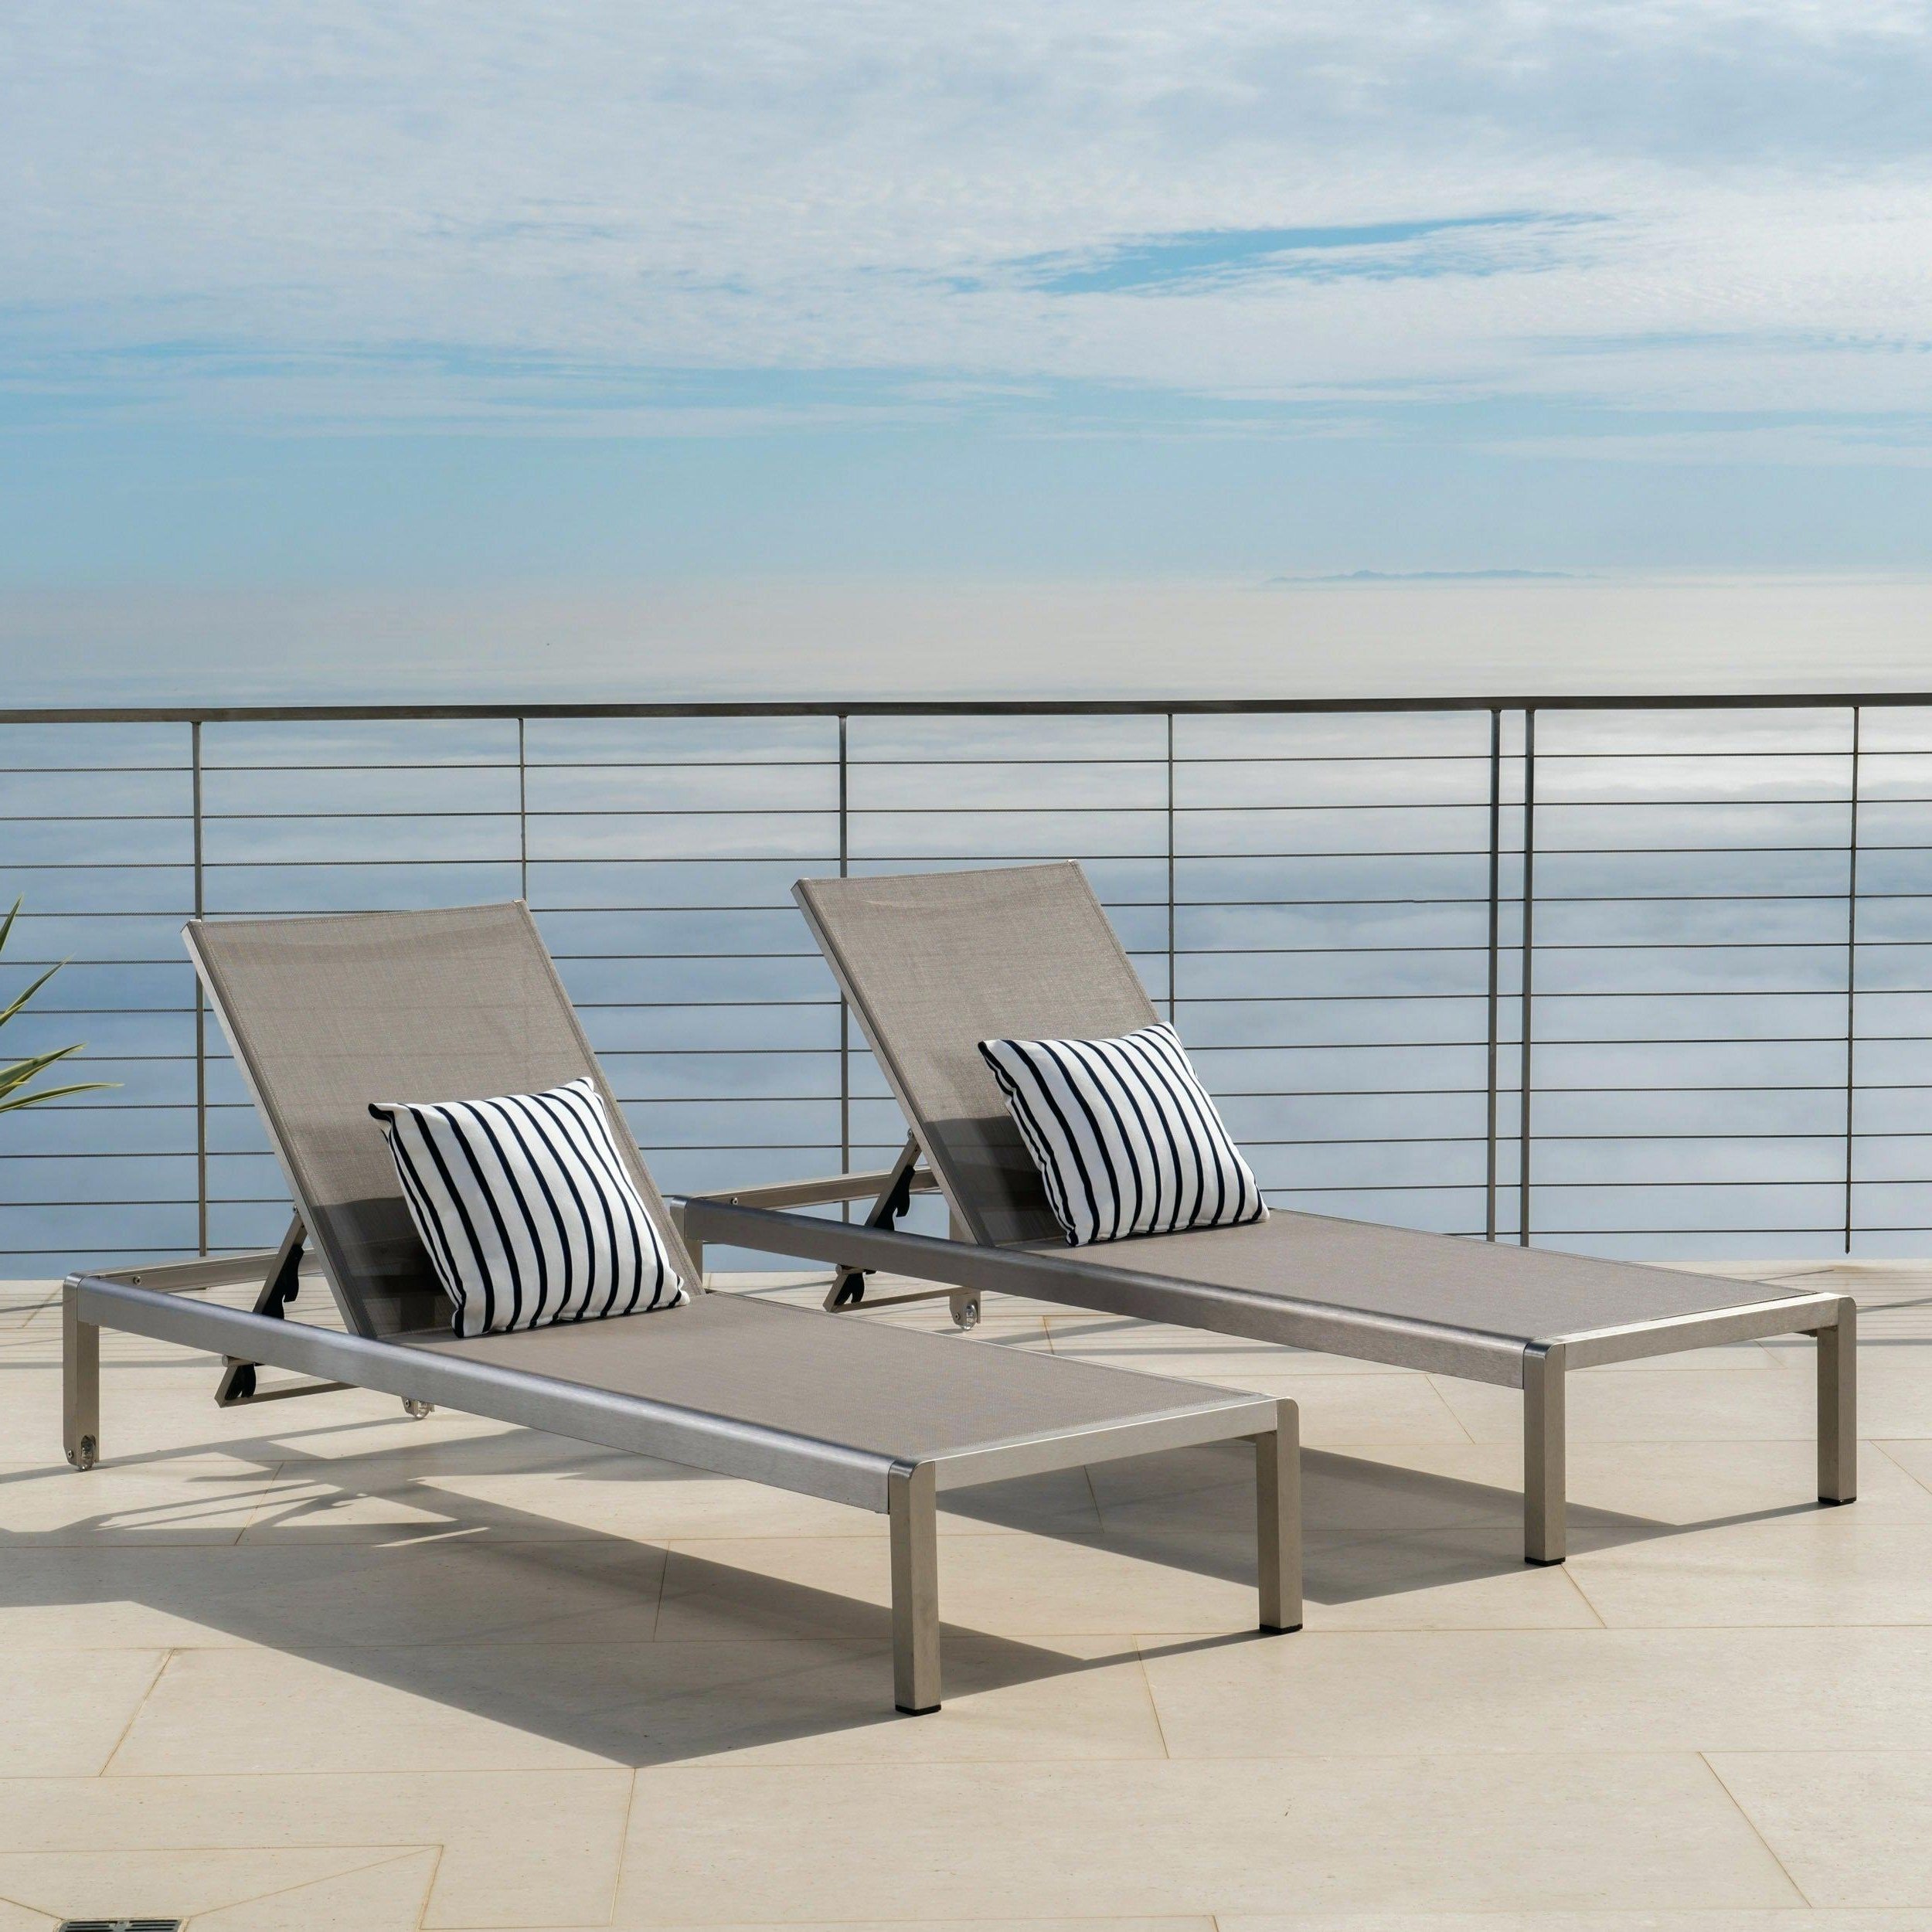 Most Current Jamaica Outdoor Chaise Lounges In Outdoor Chaise Lounge – Marcofinearts (View 15 of 25)